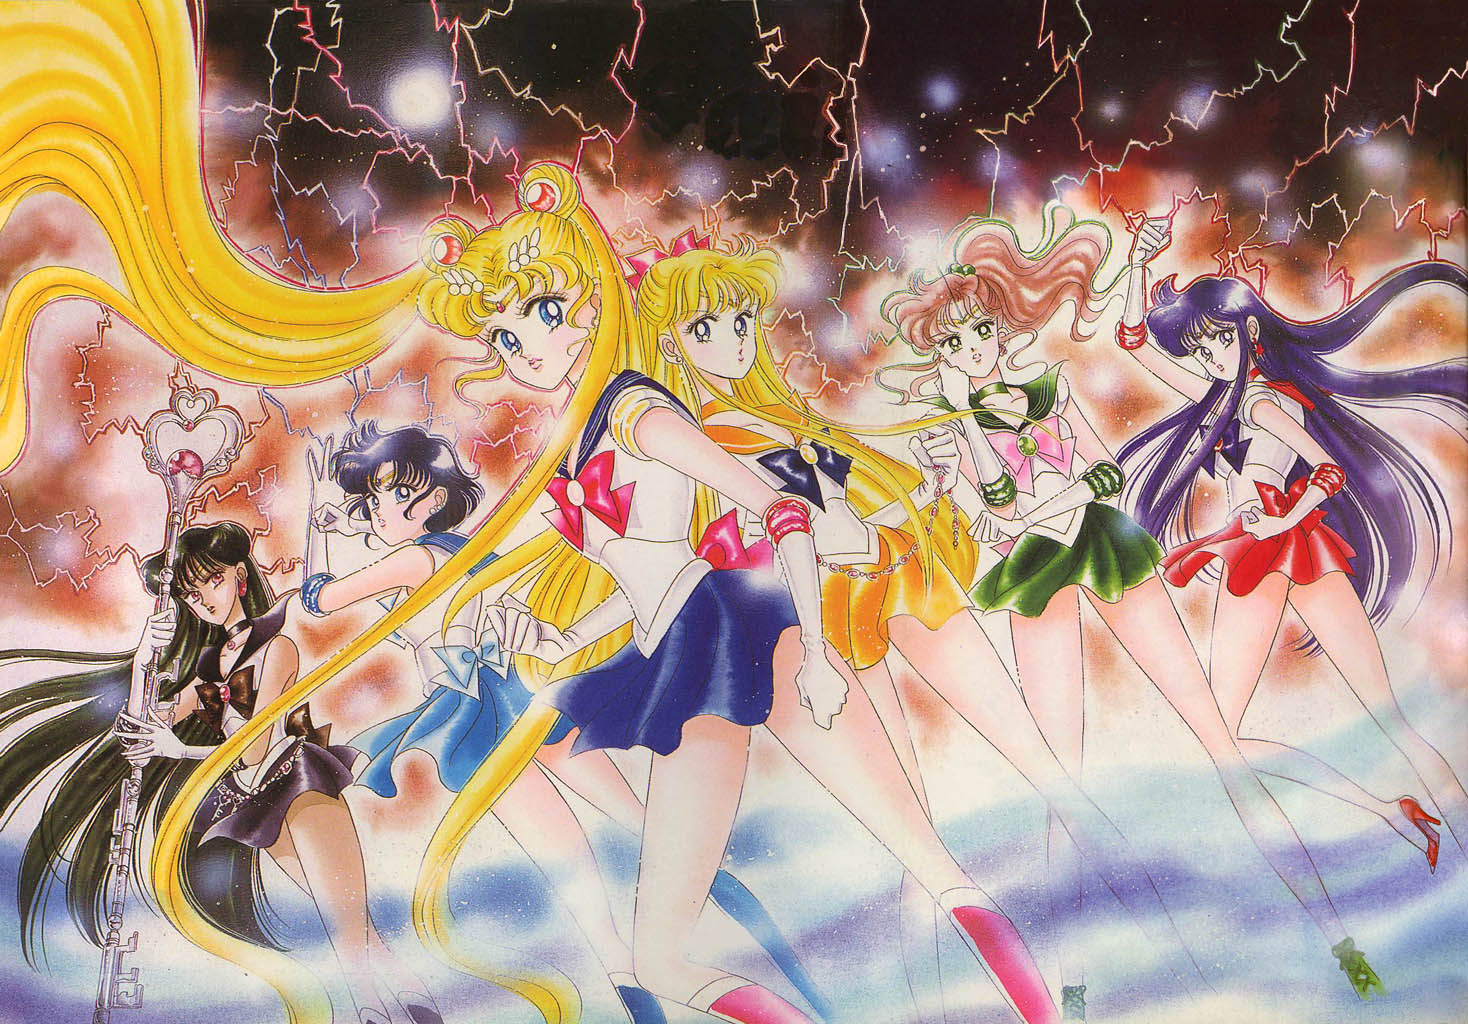 The Sailor Scouts in the manga as drawn by Naoko Takeuchi